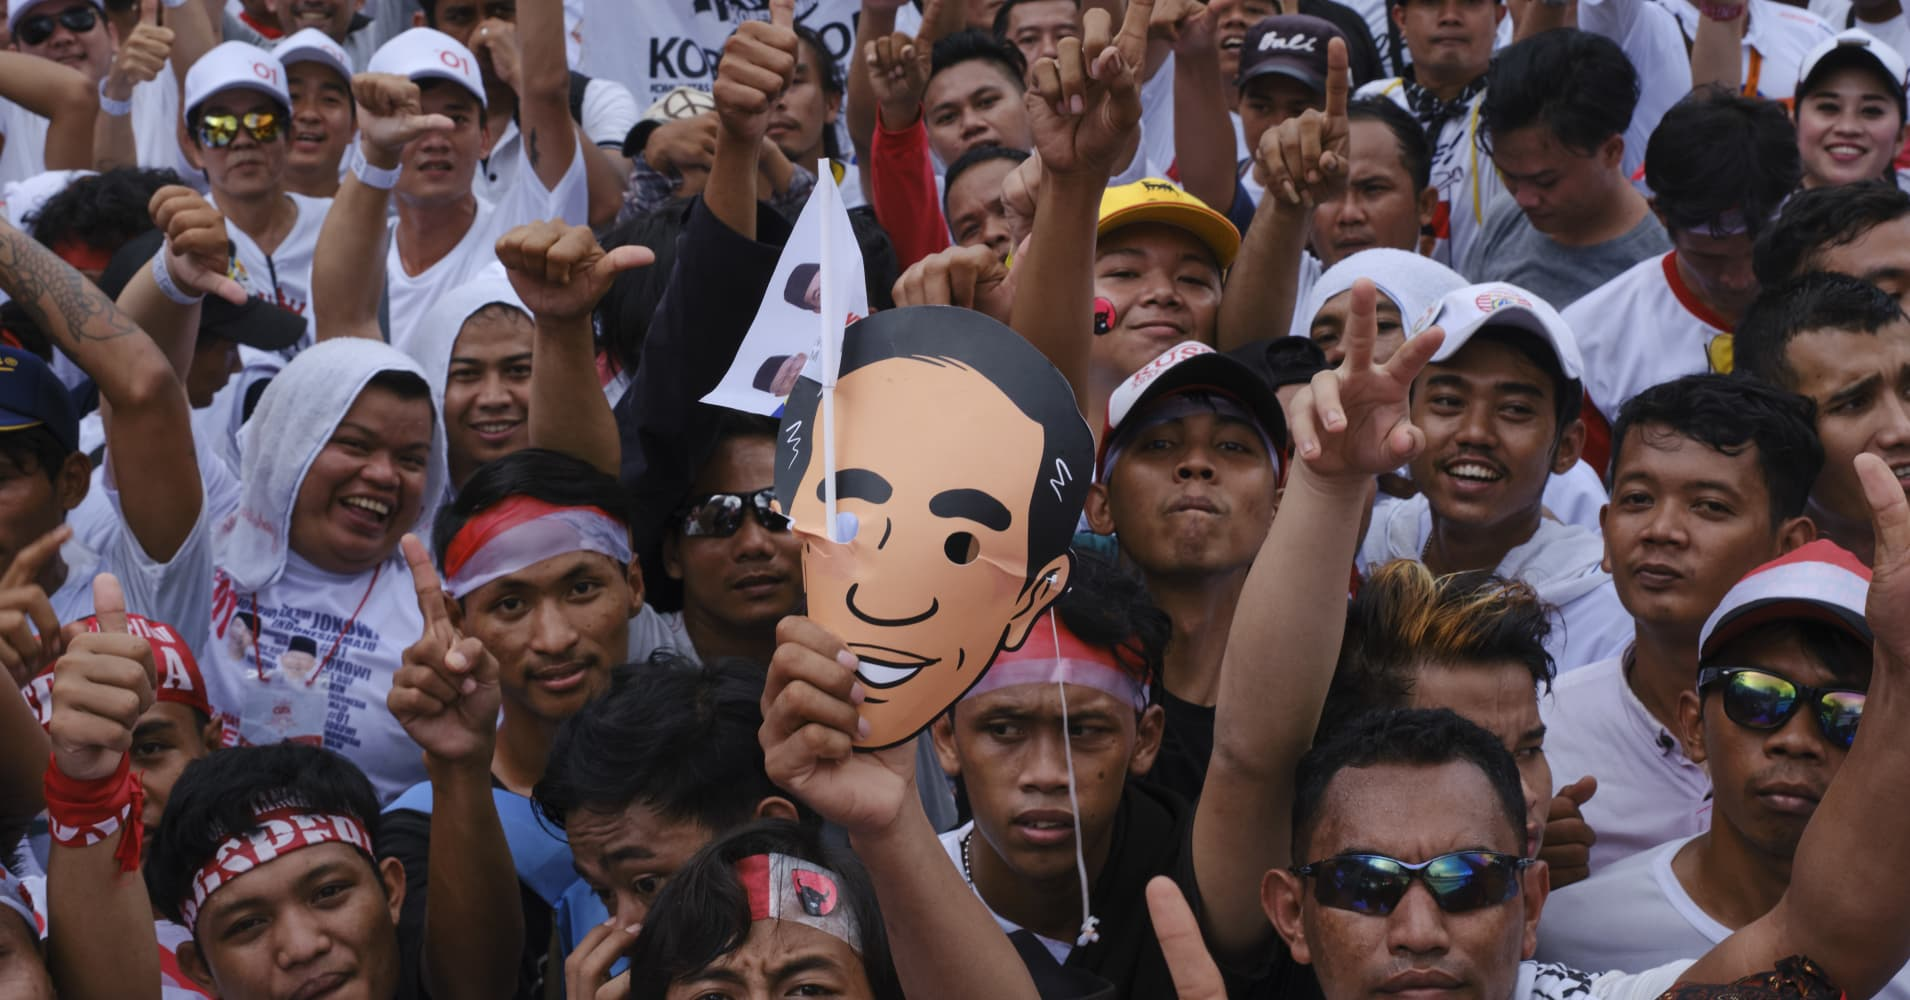 A crowd holding a a mask with a cartoon image of Indonesian President Joko Widodo at a political rally in Jakarta, Indonesia.